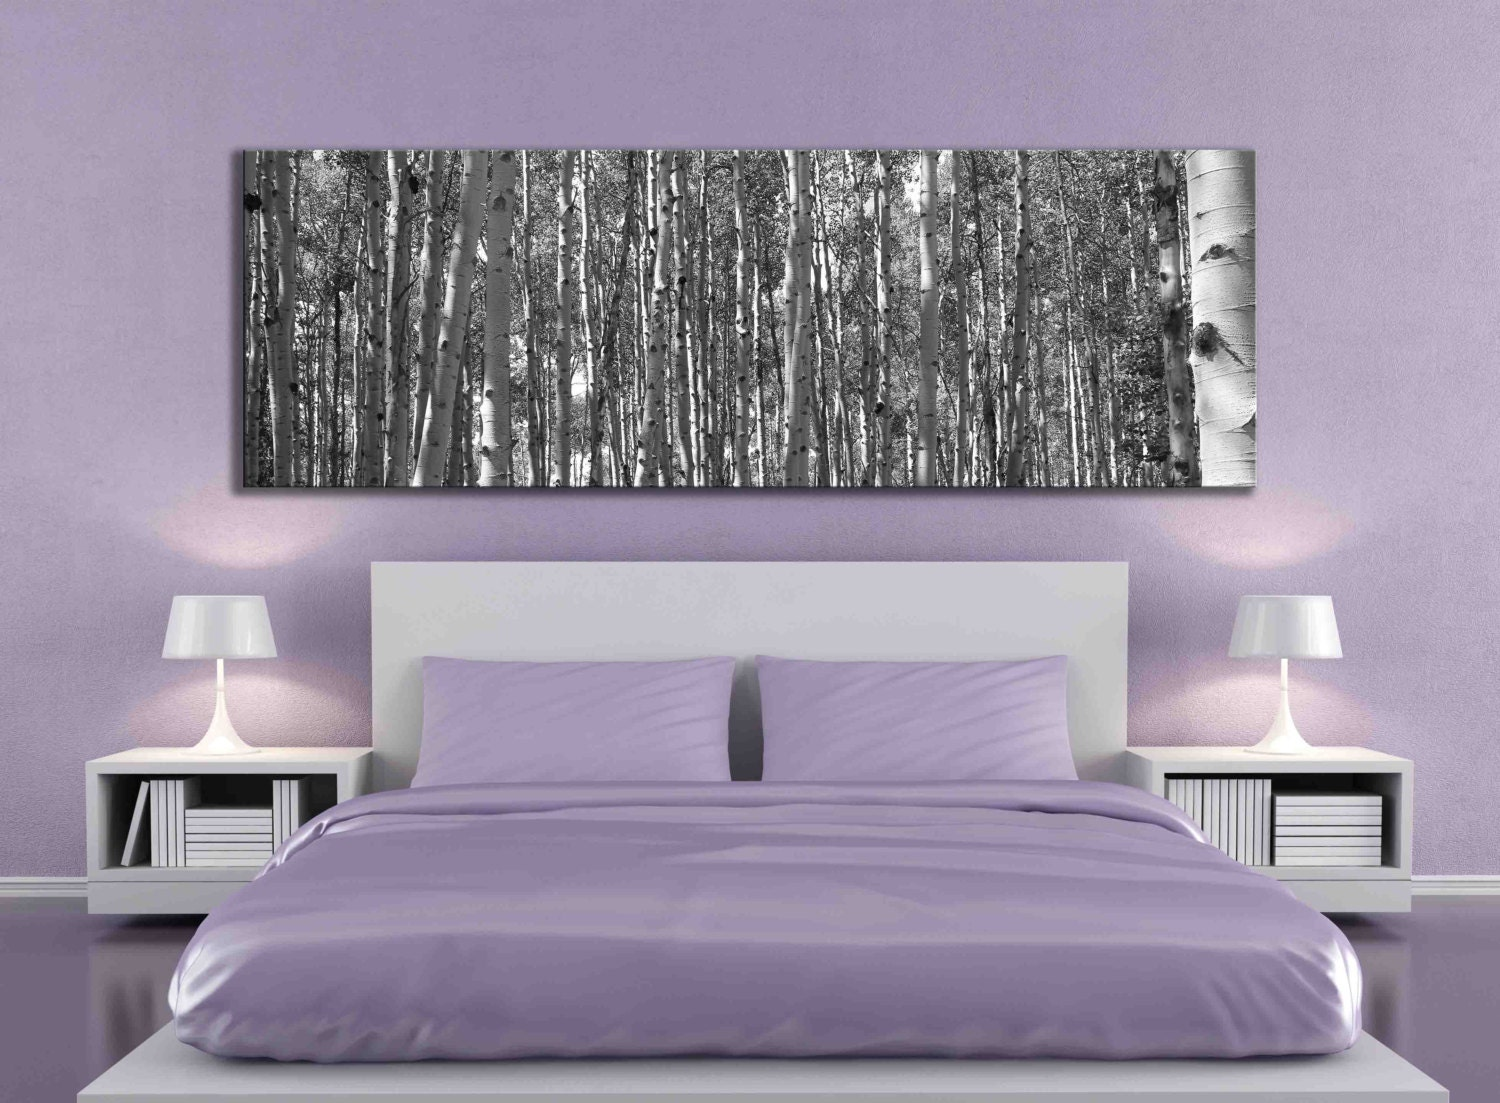 Big canvas print 20 x 60 or 12 x 36 inch black and white